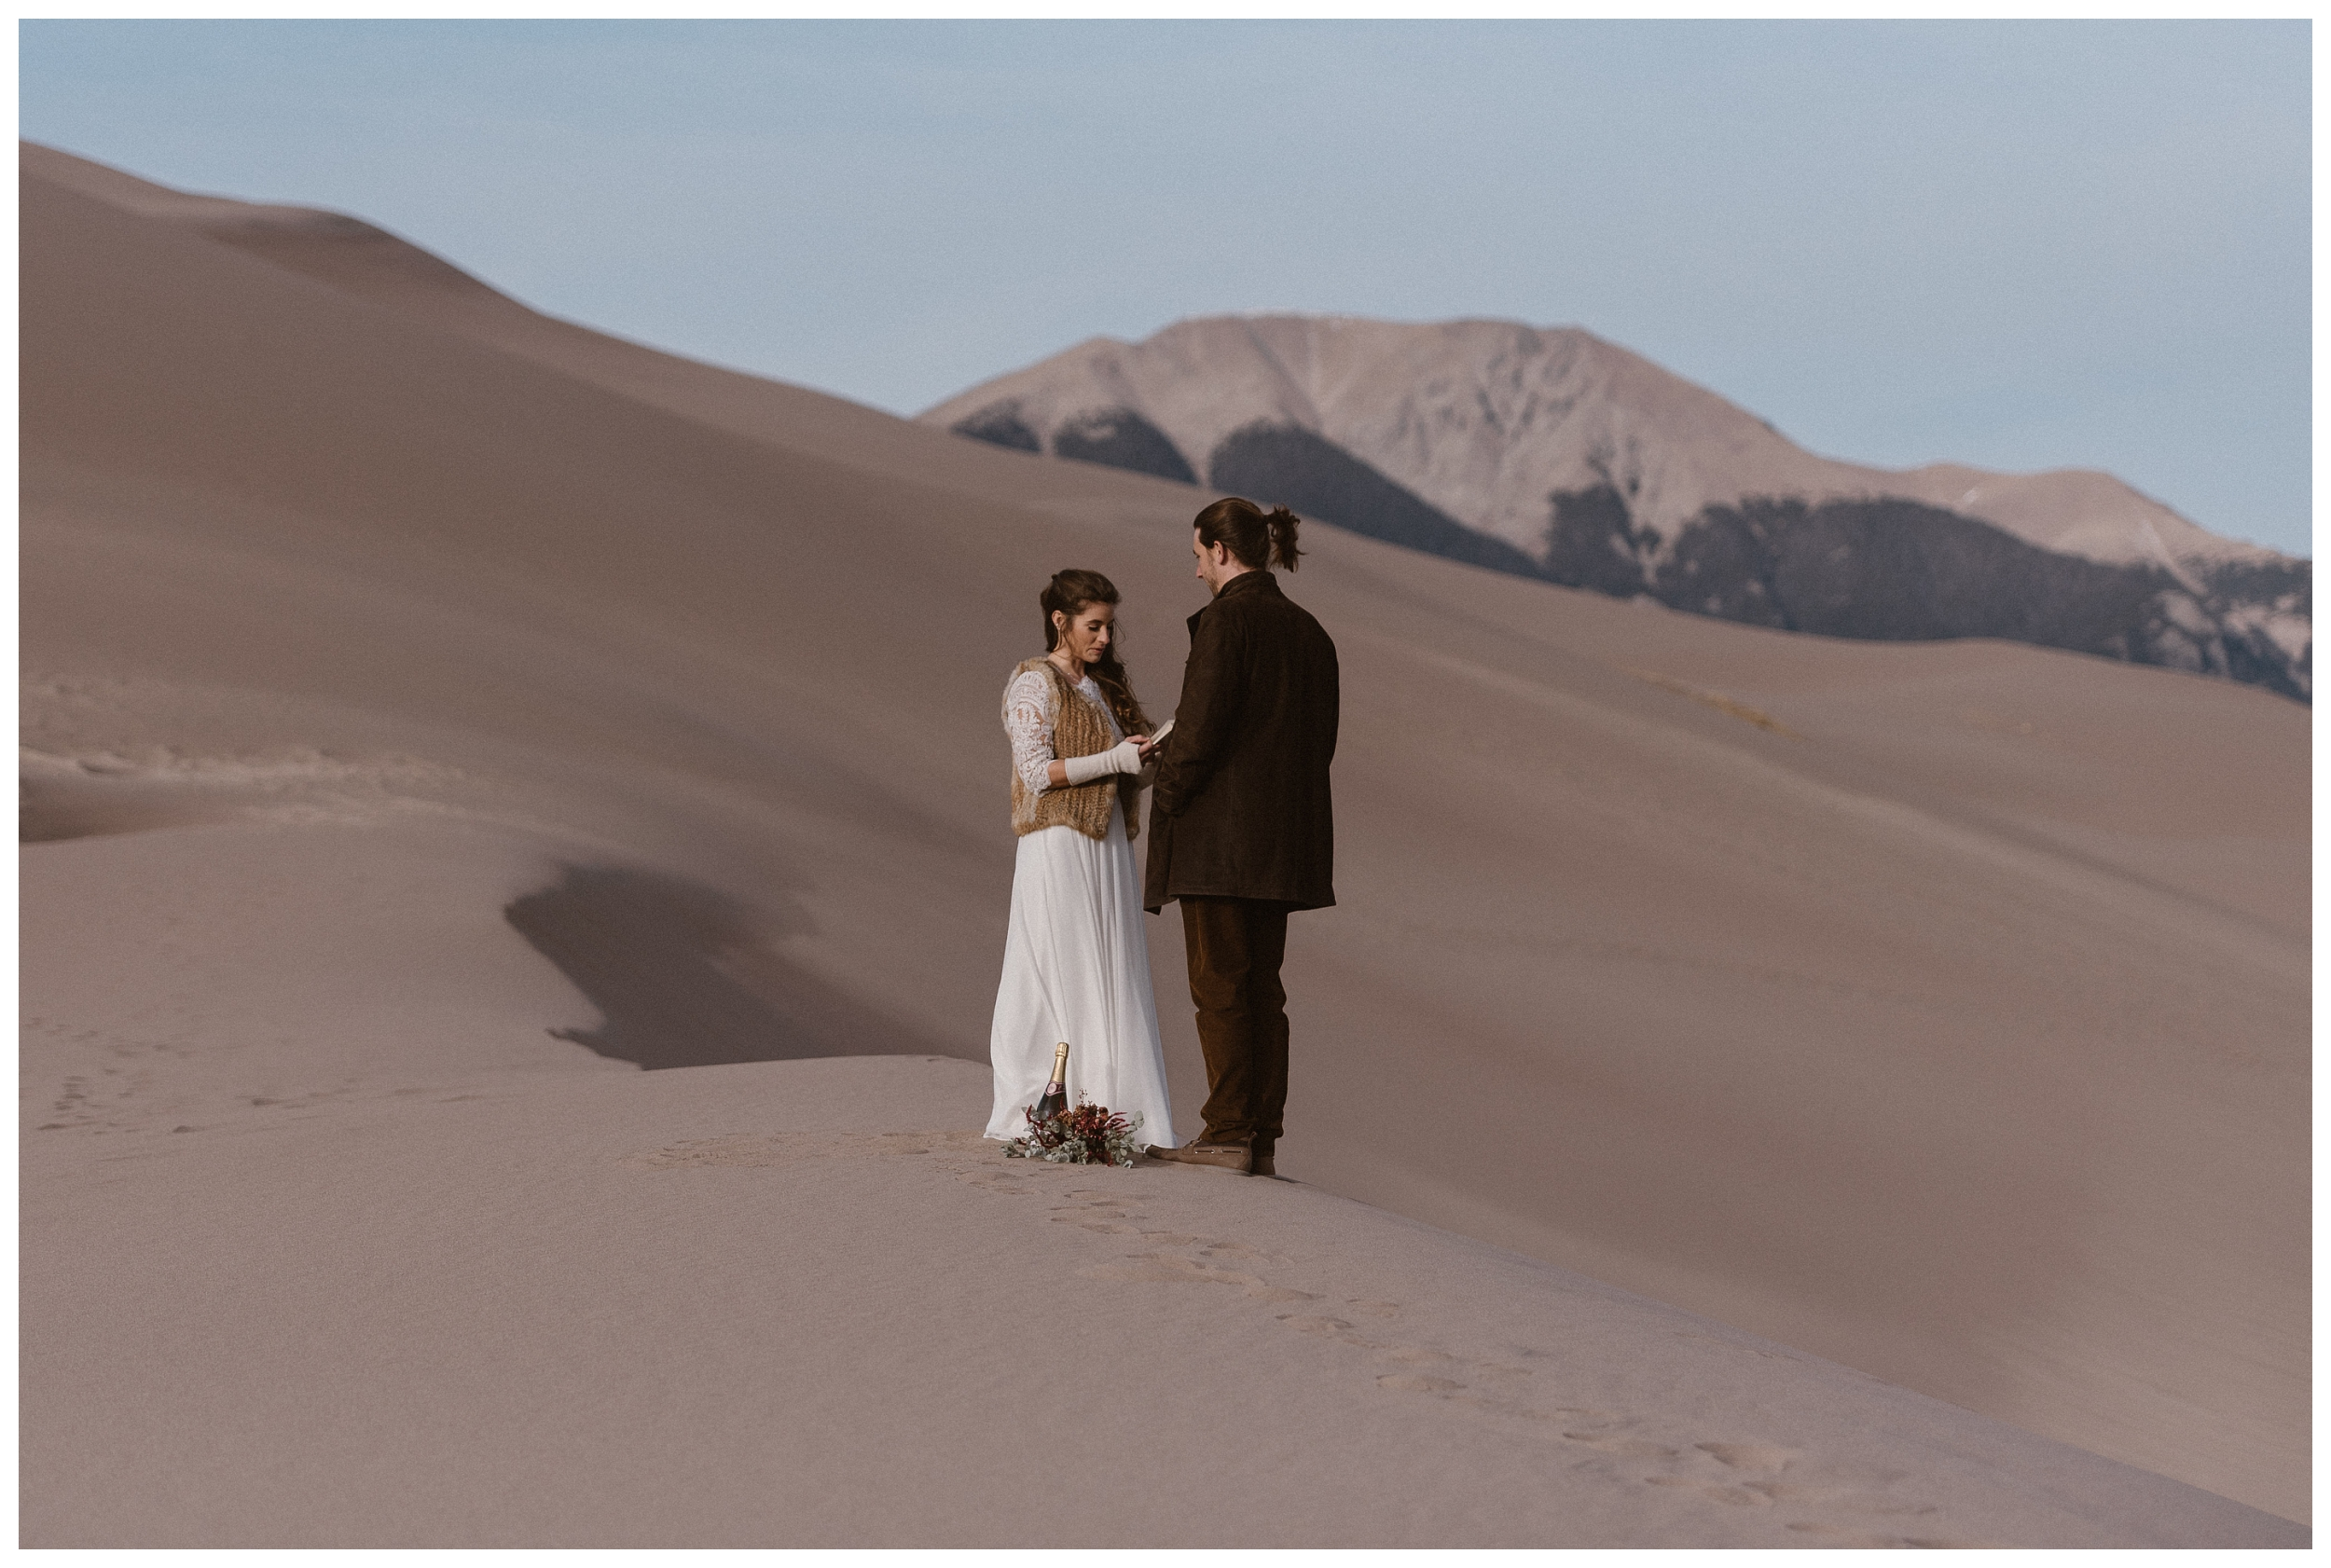 Olivia and Justin have a self solemnizing ceremony for their wilderness elopement at Great Sand Dunes National Park. Photo by Maddie Mae Photo, Adventures Instead.